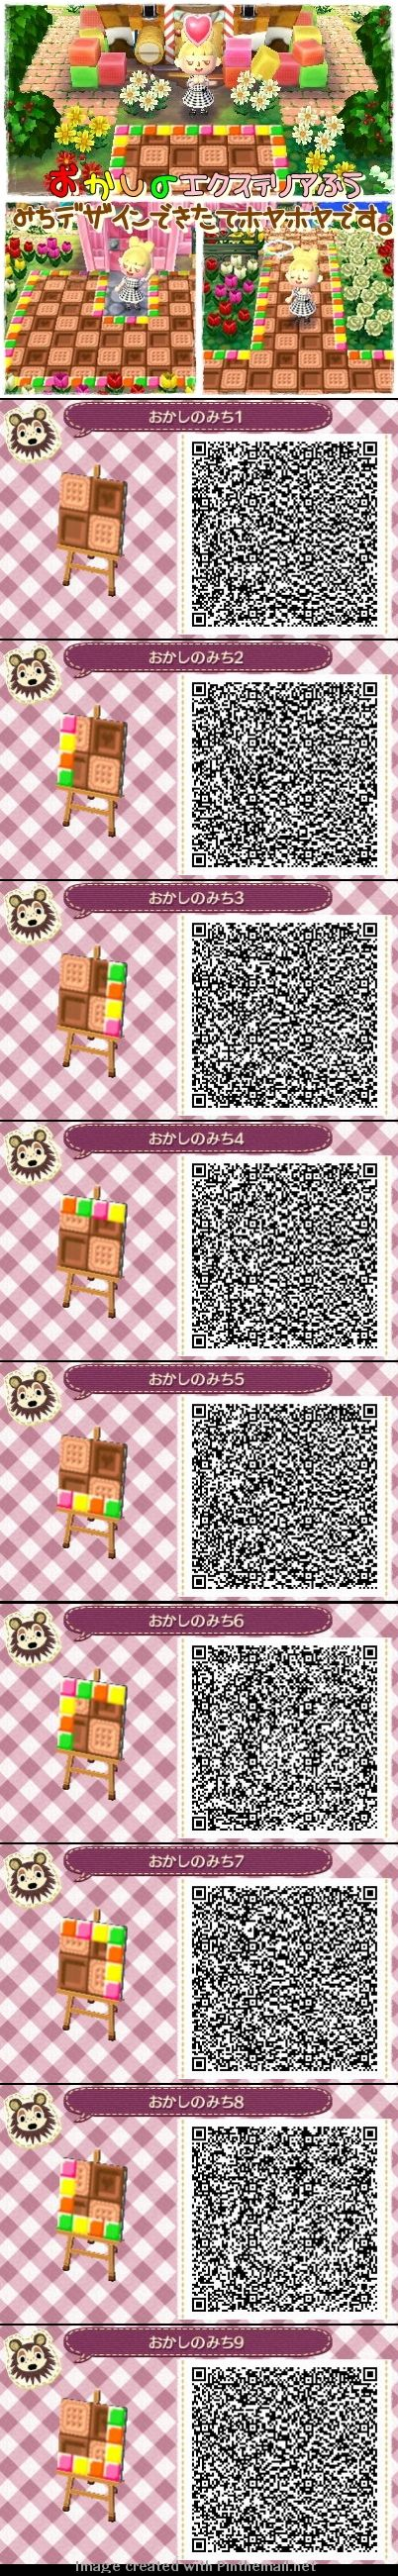 Animal Crossing New Leaf QR codes sweets pathway